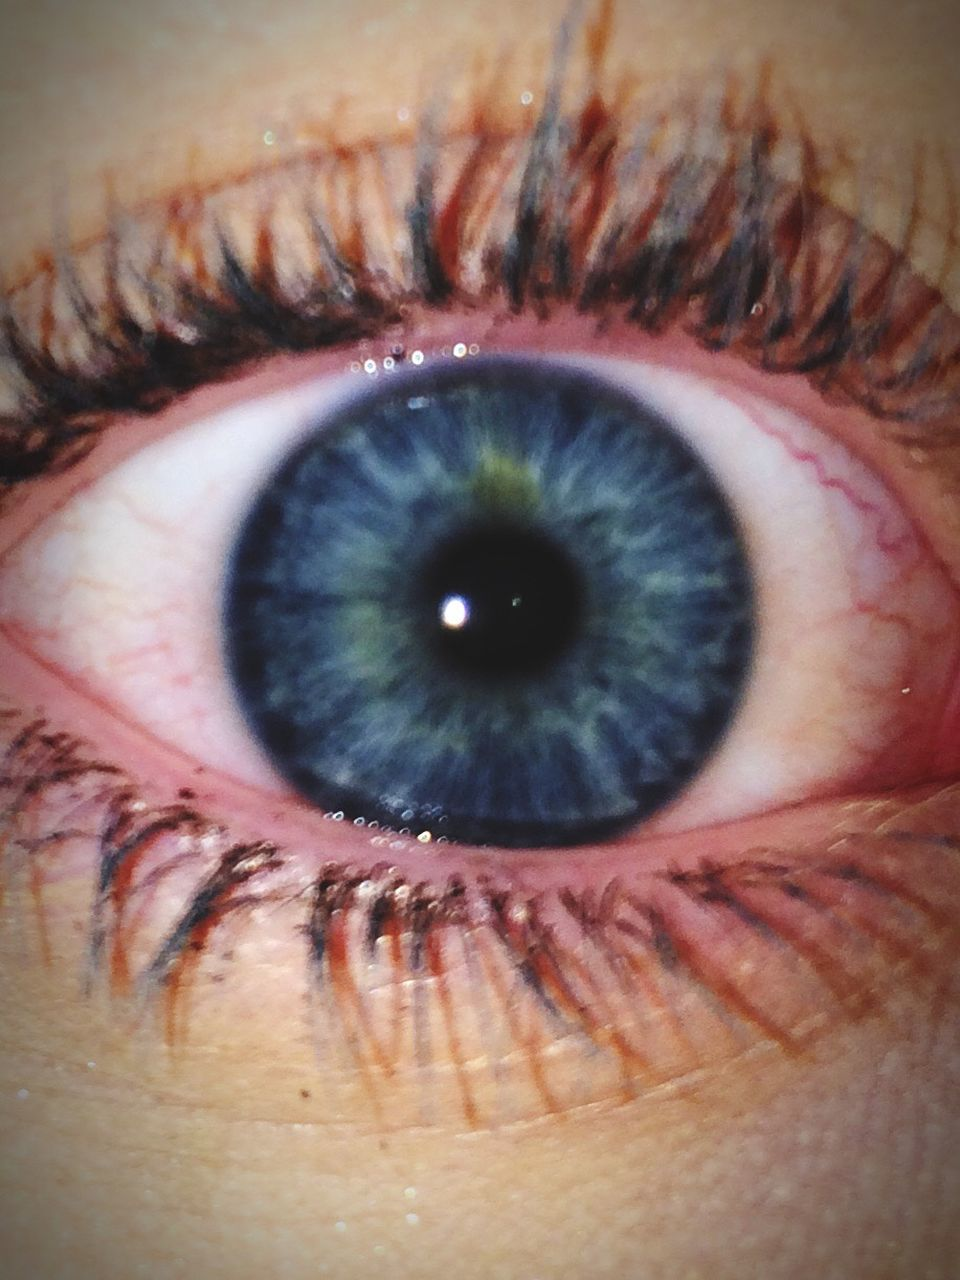 human eye, one person, real people, looking at camera, sensory perception, eyelash, eyesight, macro, human body part, close-up, eyeball, portrait, indoors, iris - eye, day, people